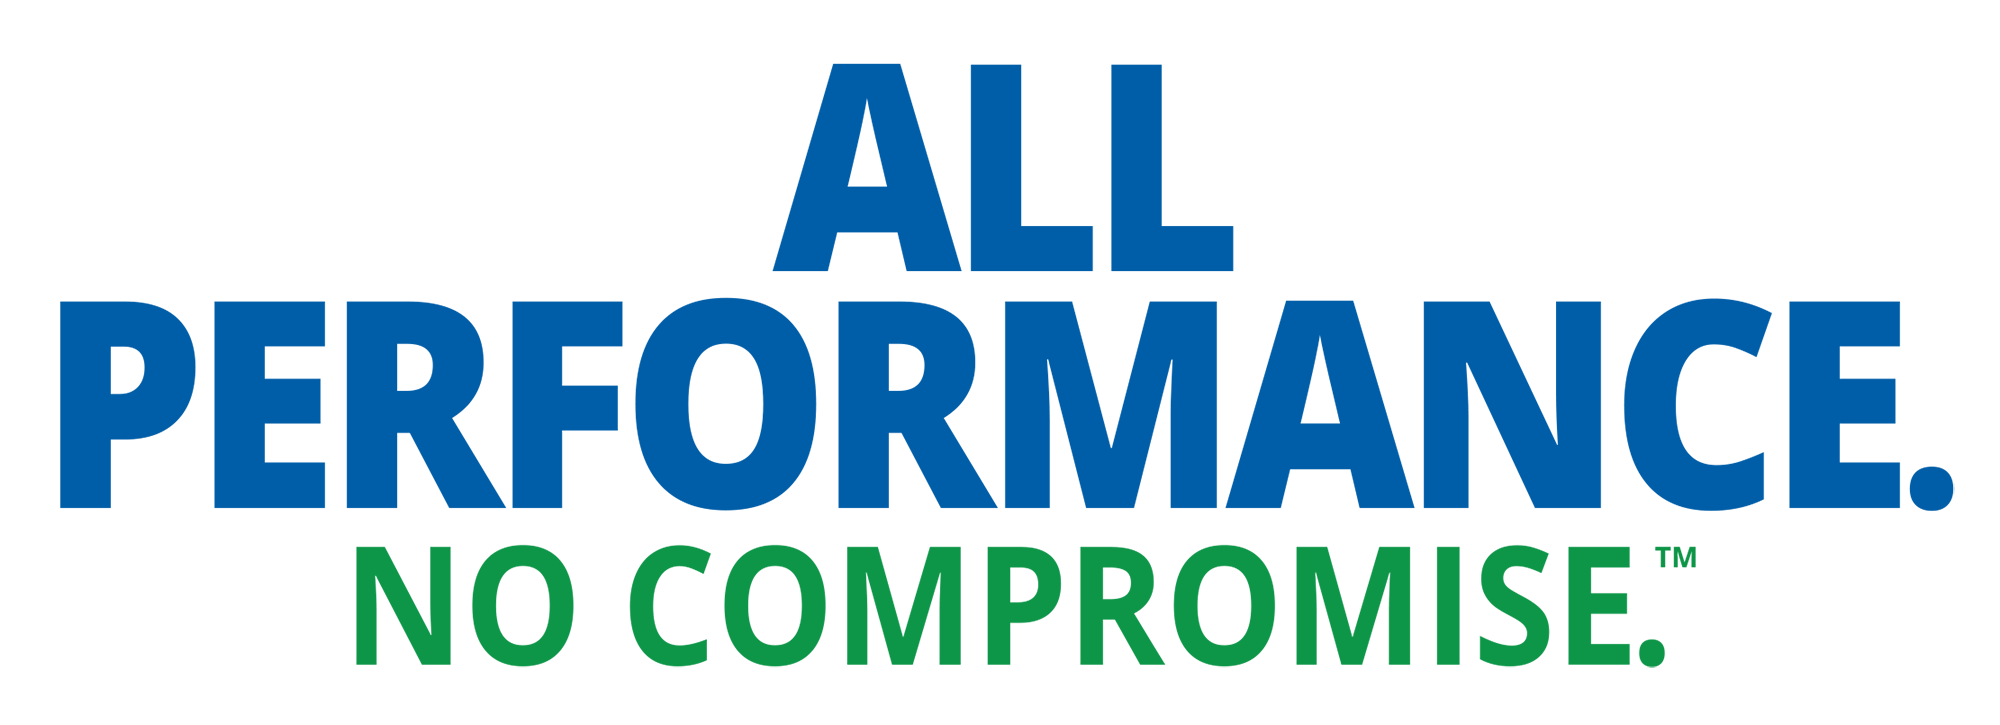 All Performance No Compromise TM2